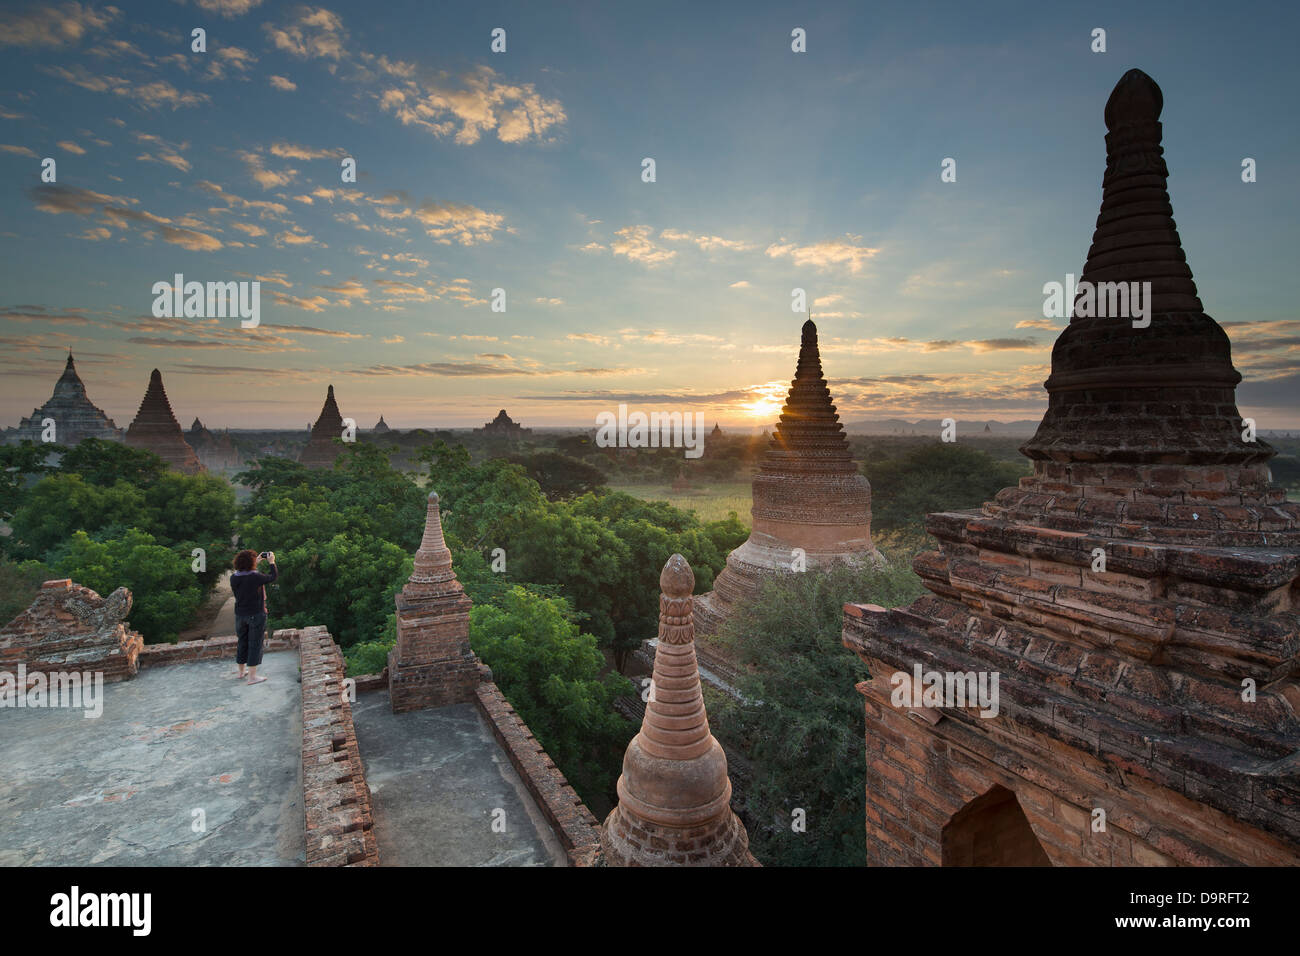 Wendy taking a picture of the Temples of Bagan at sunrise, Myanmar (Burma) Stock Photo